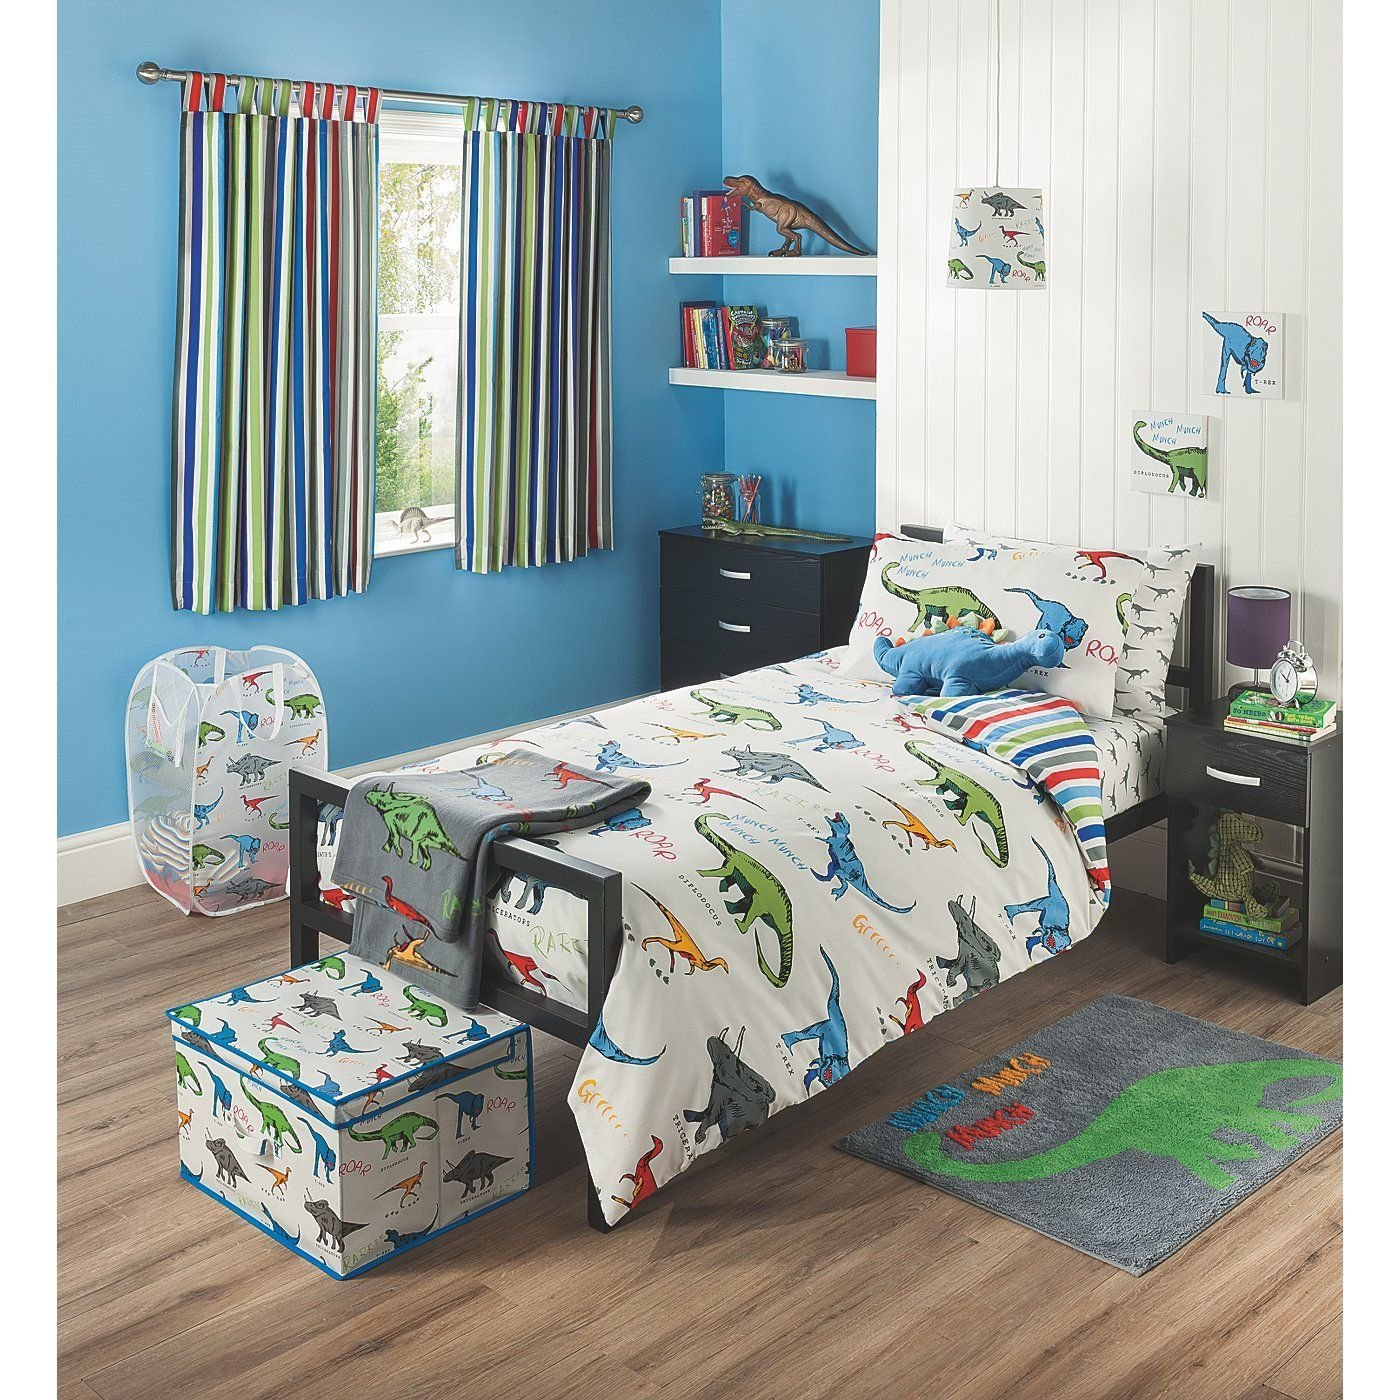 Best Buy George Home Dinosaurs Bedroom Range From Our Bedding With Pictures